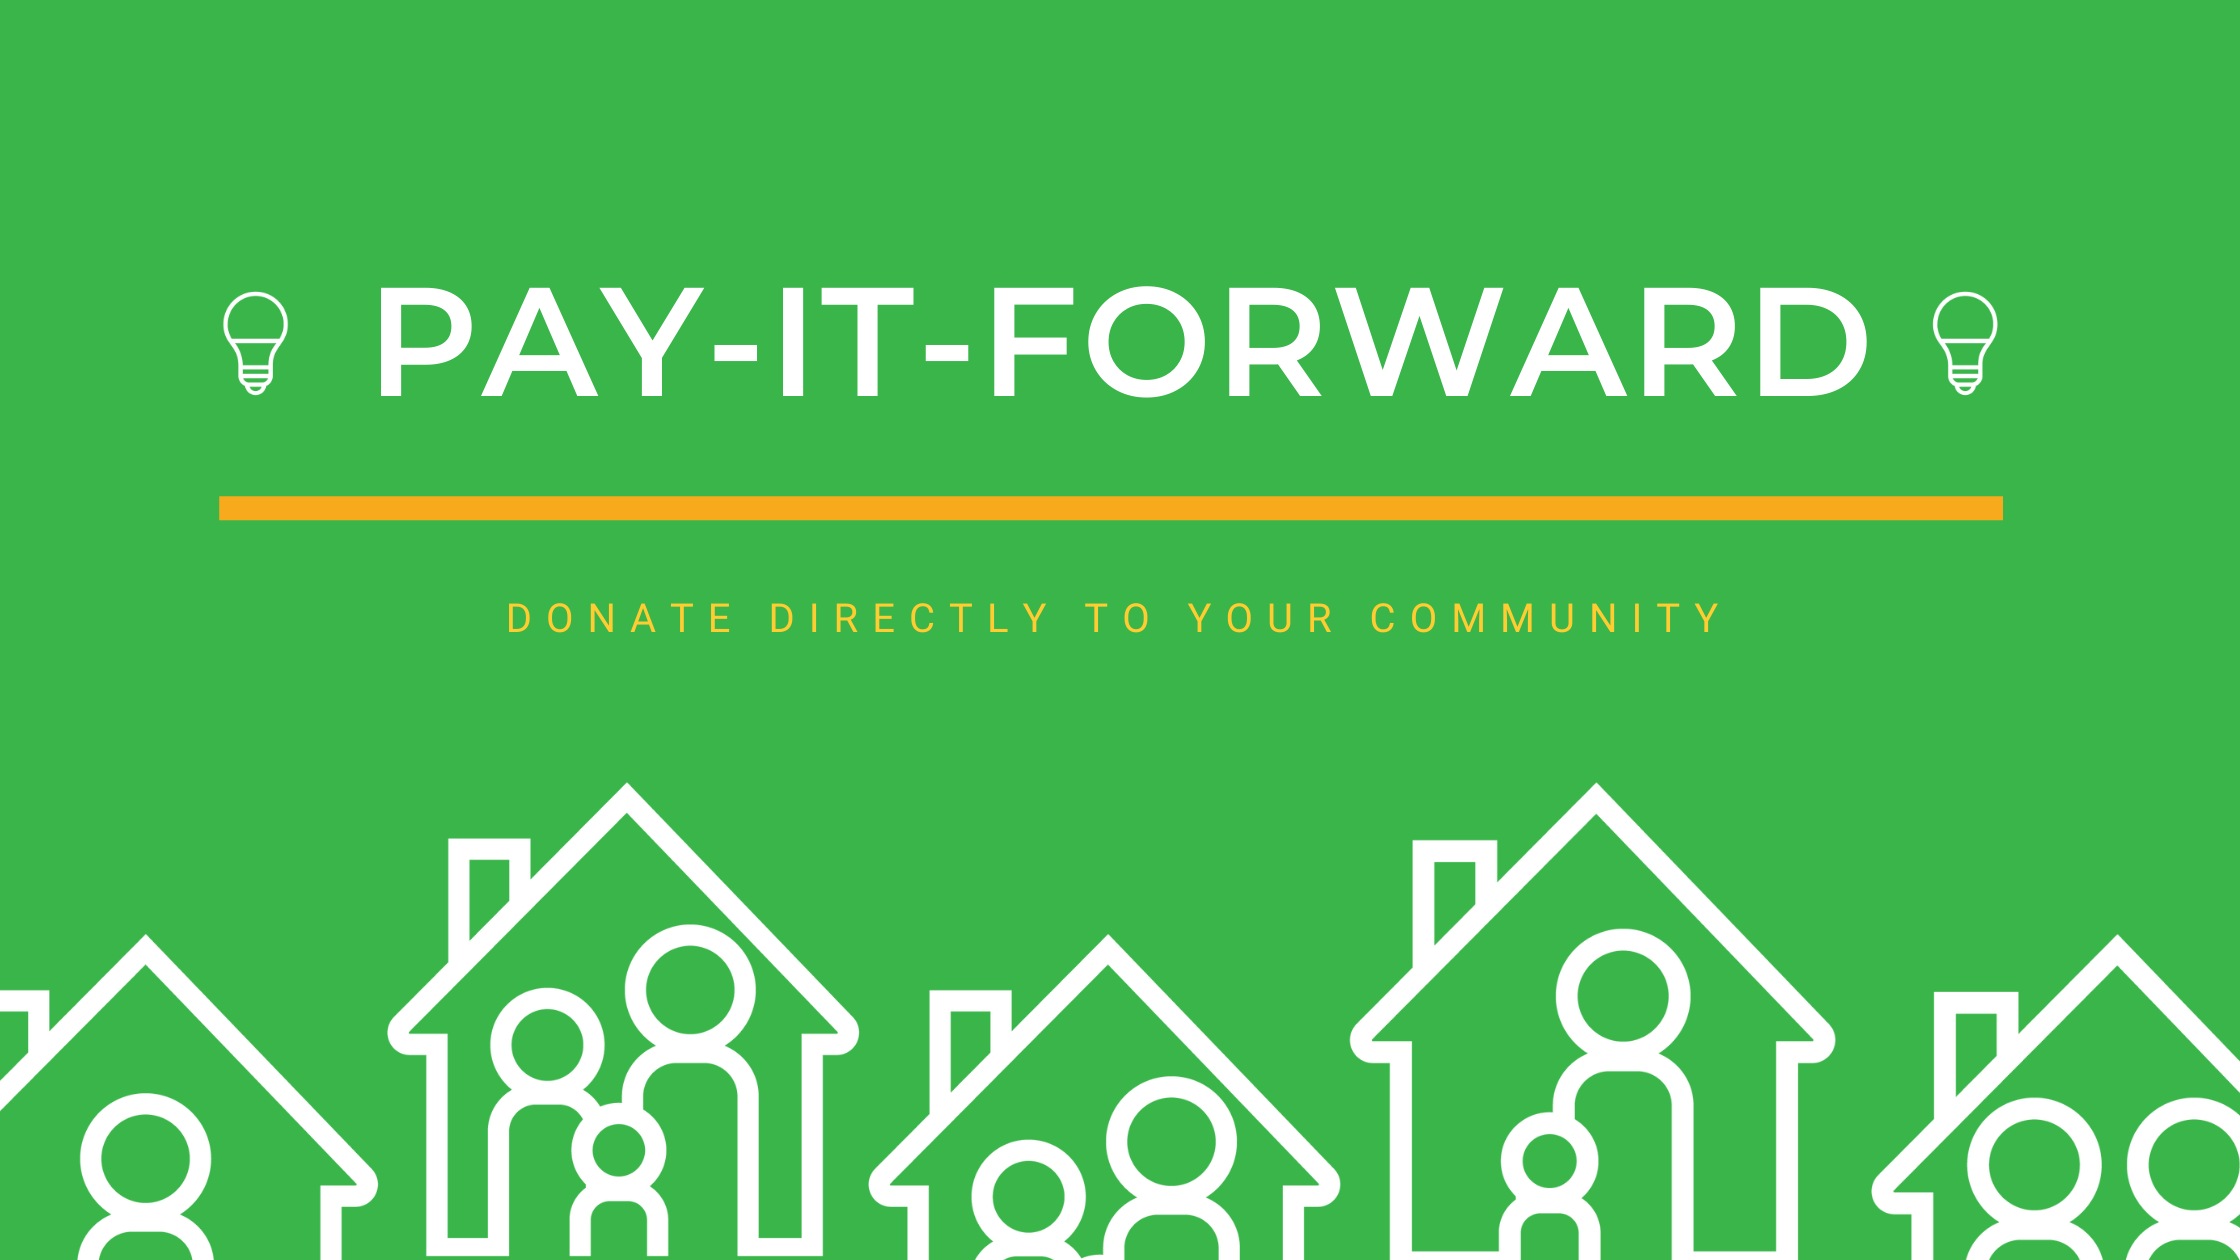 Help us PAY-IT-FORWARD